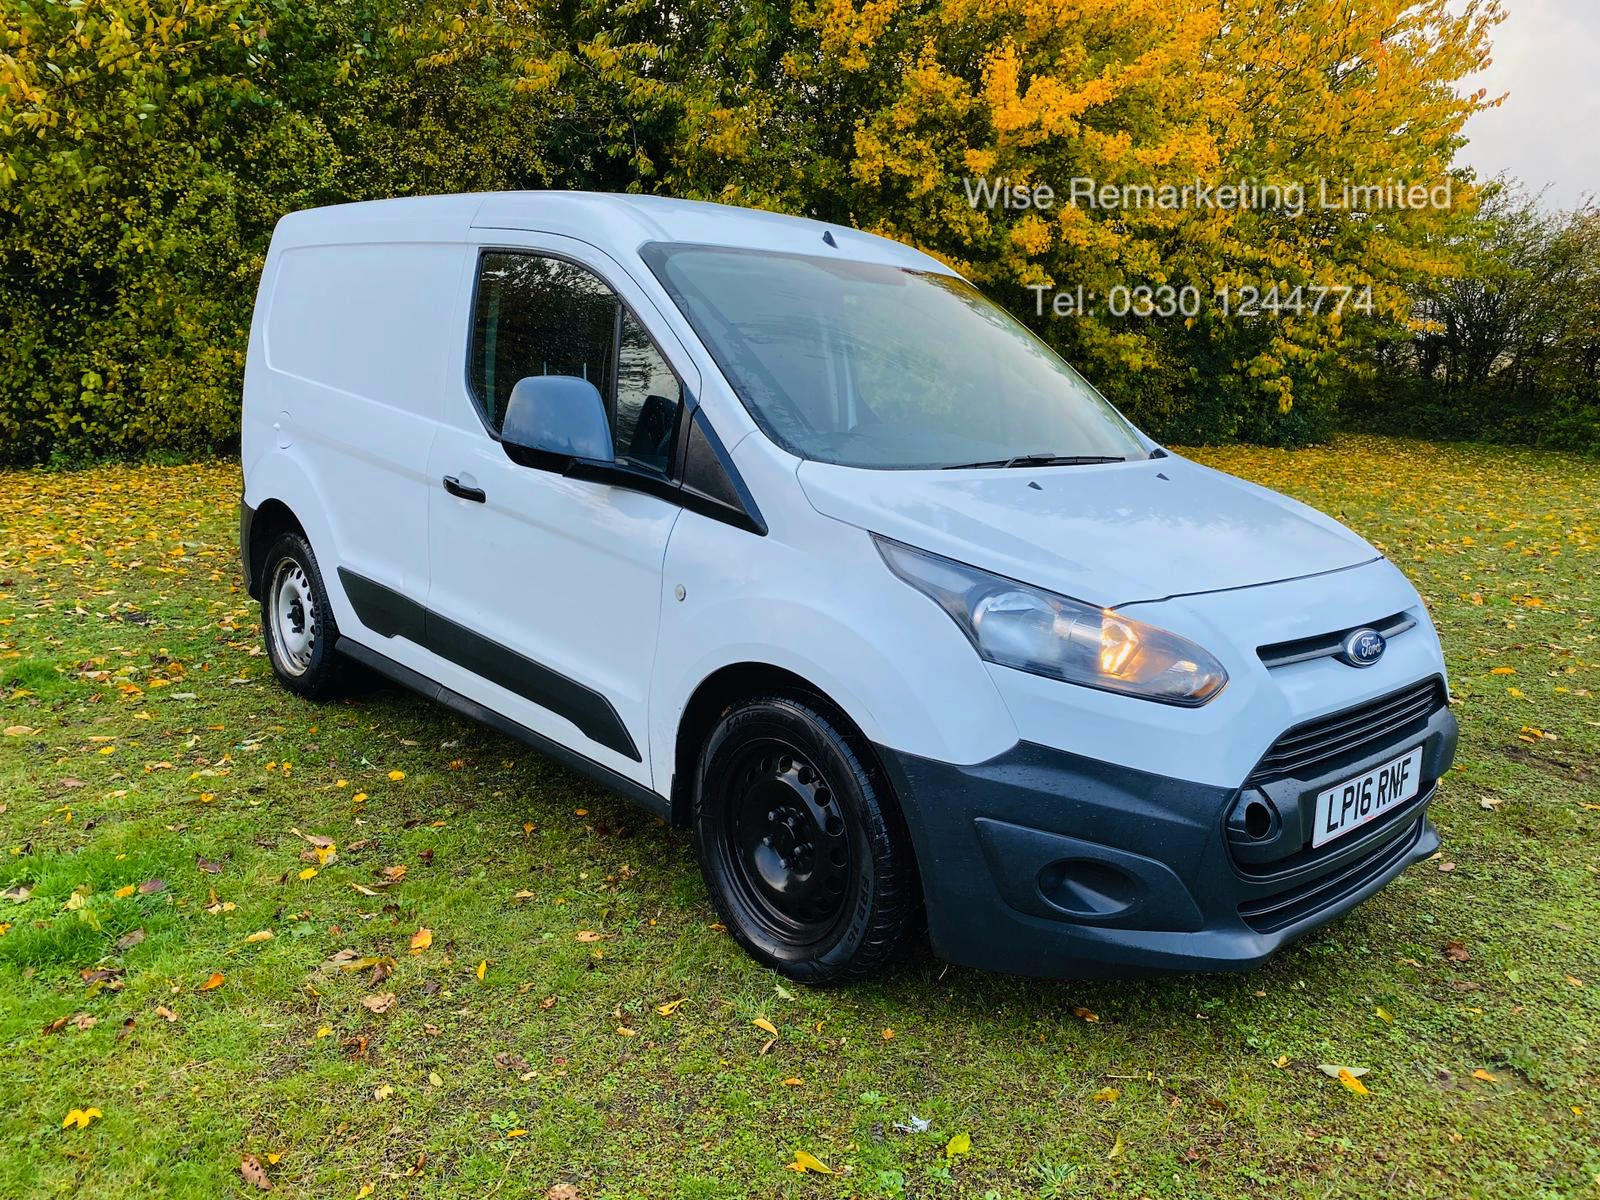 Ford Transit Connect 200 1.6 TDCI - 2016 16 Reg - 1 Keeper From New - Elec Pack -Bluetooth - Image 3 of 18